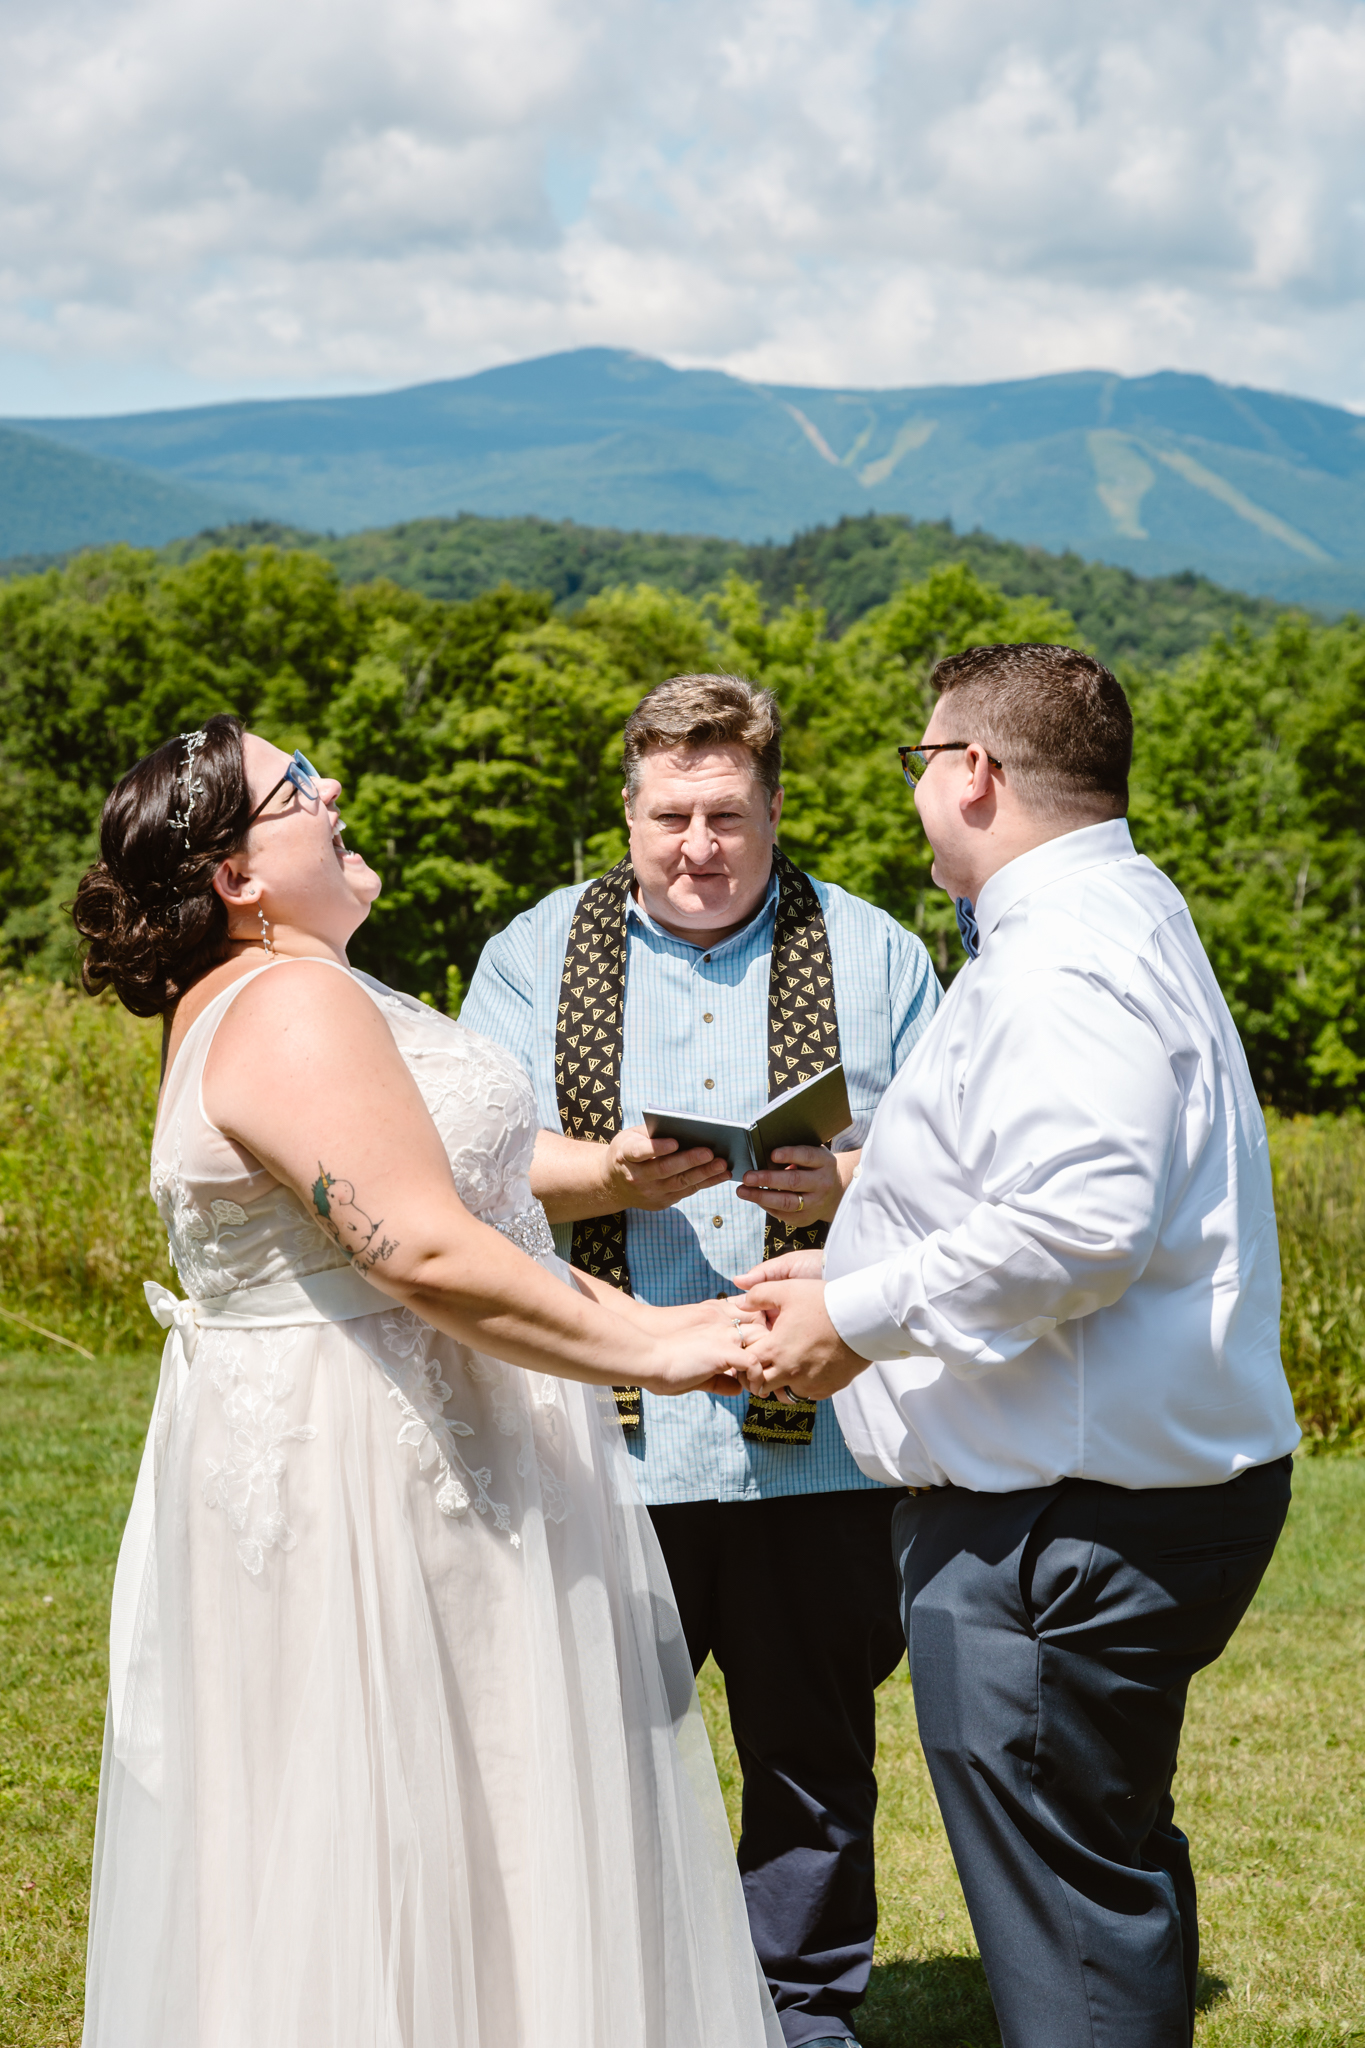 Vermont-Wedding-080119-WEBsize-71.jpg